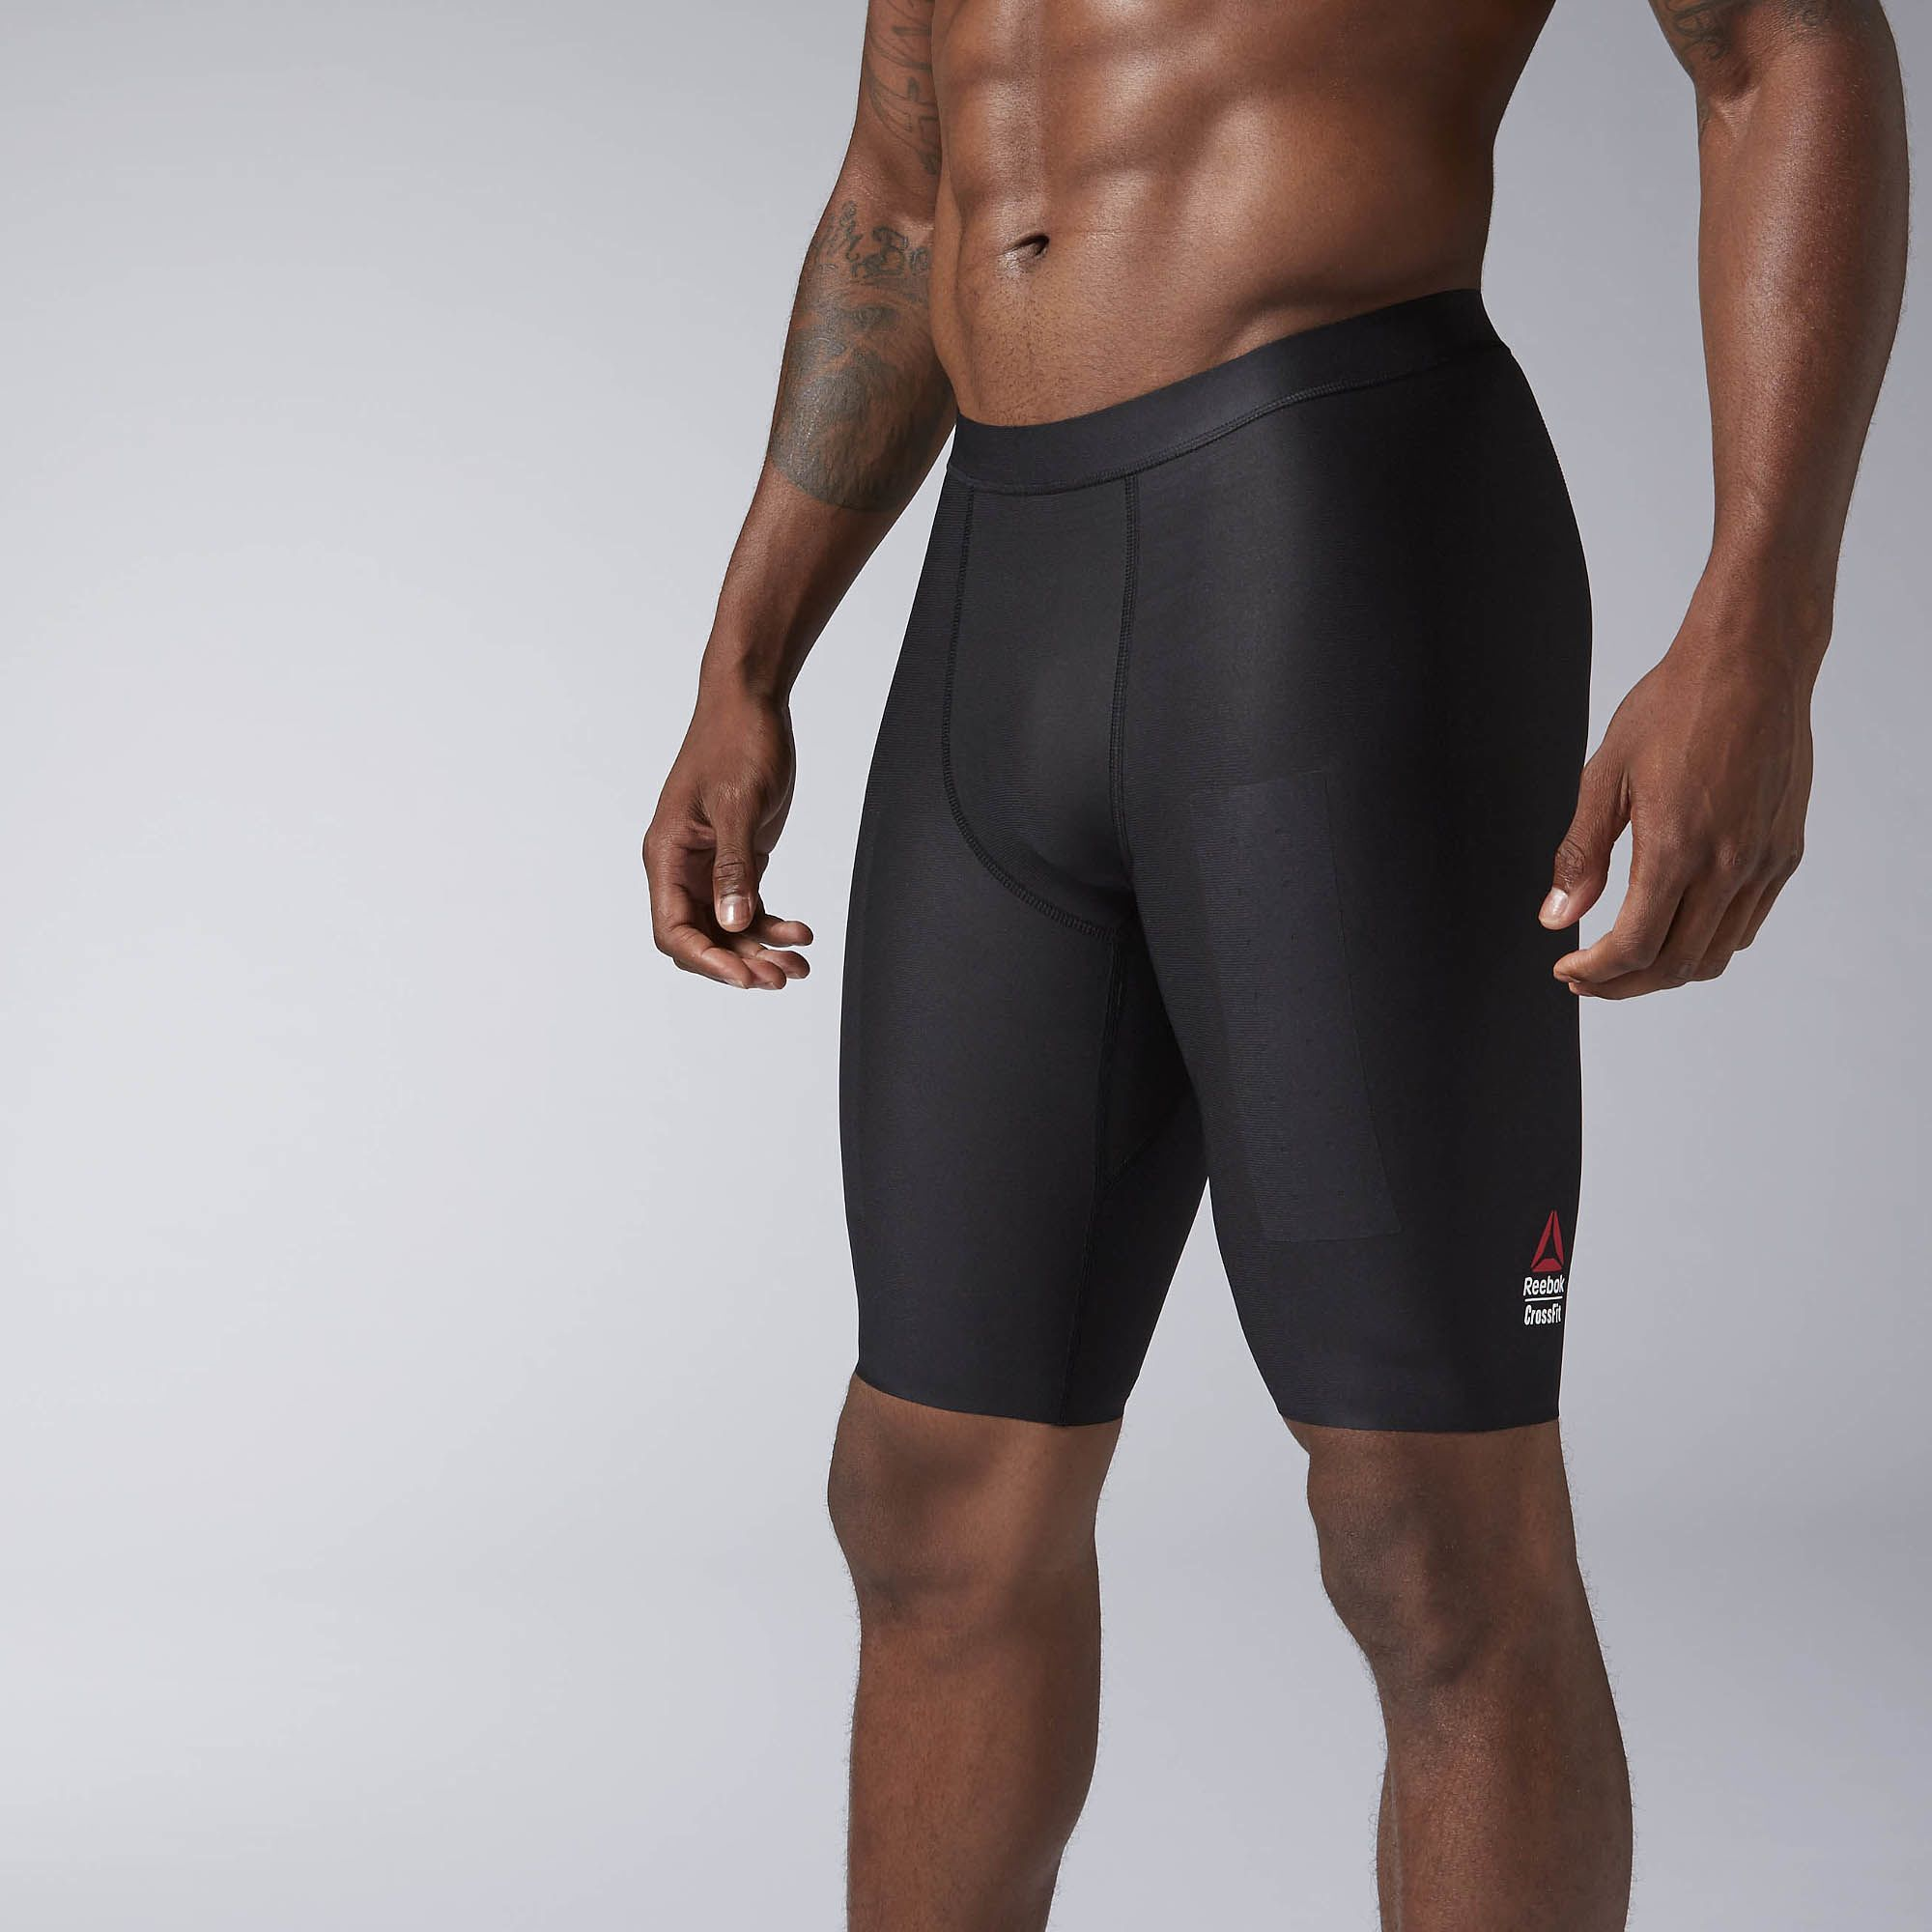 Two types of Compression Shorts  Outerwear and Underwear ... 6de7e1e22